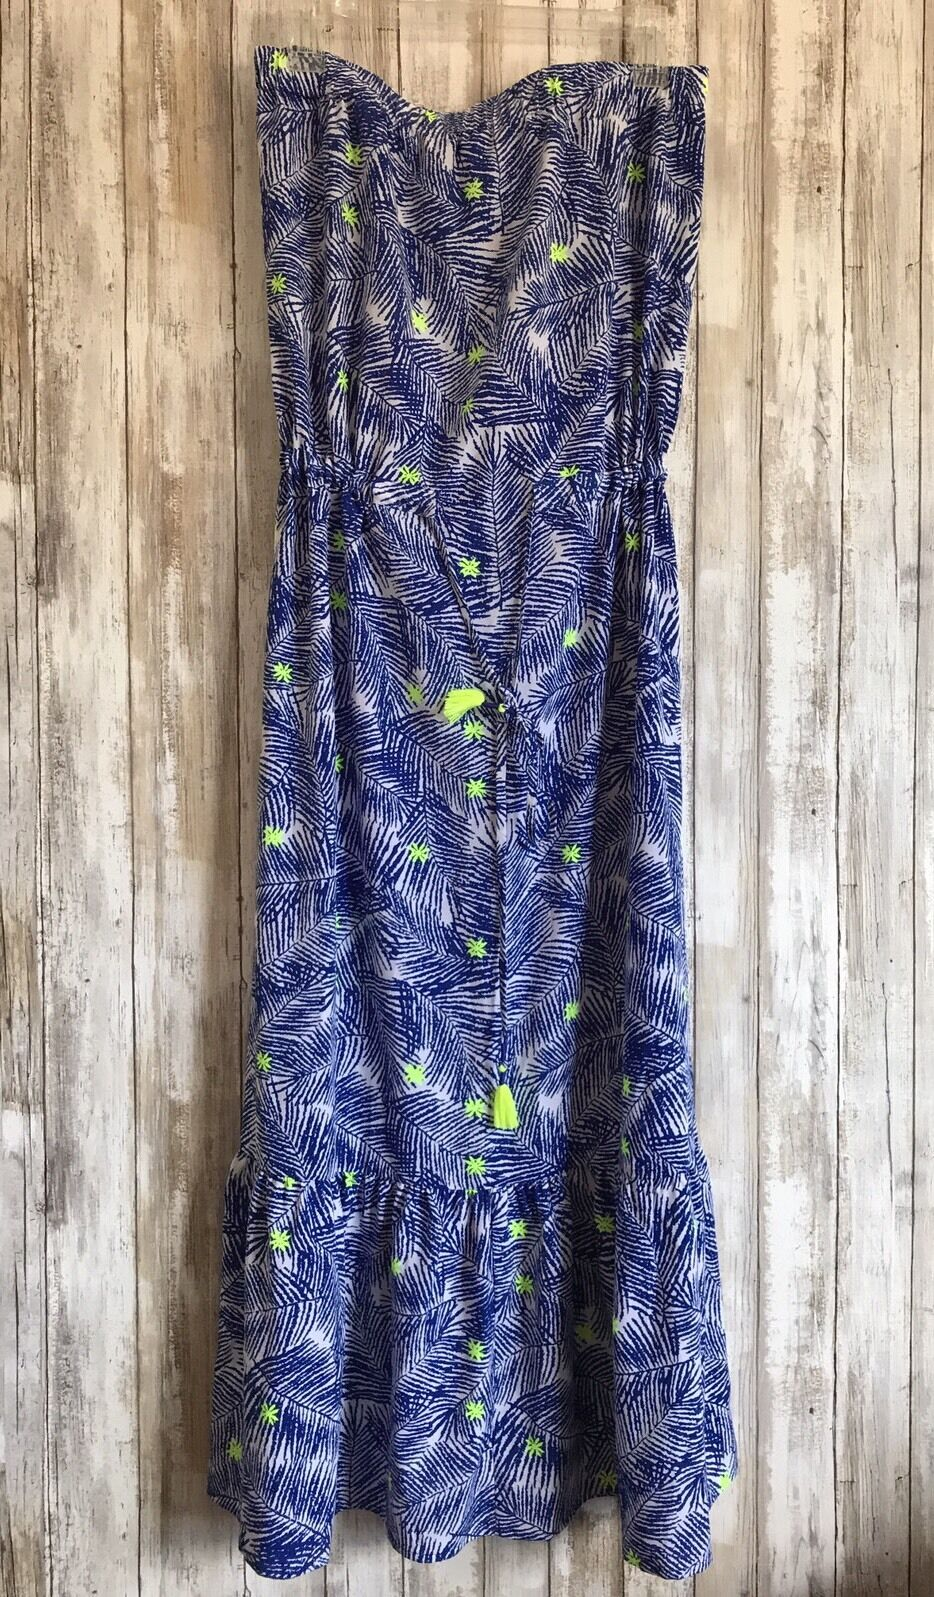 Martha's Vineyard Blau Palm Leaf Tree Pattern Ruffle Maxi Dress M Medium